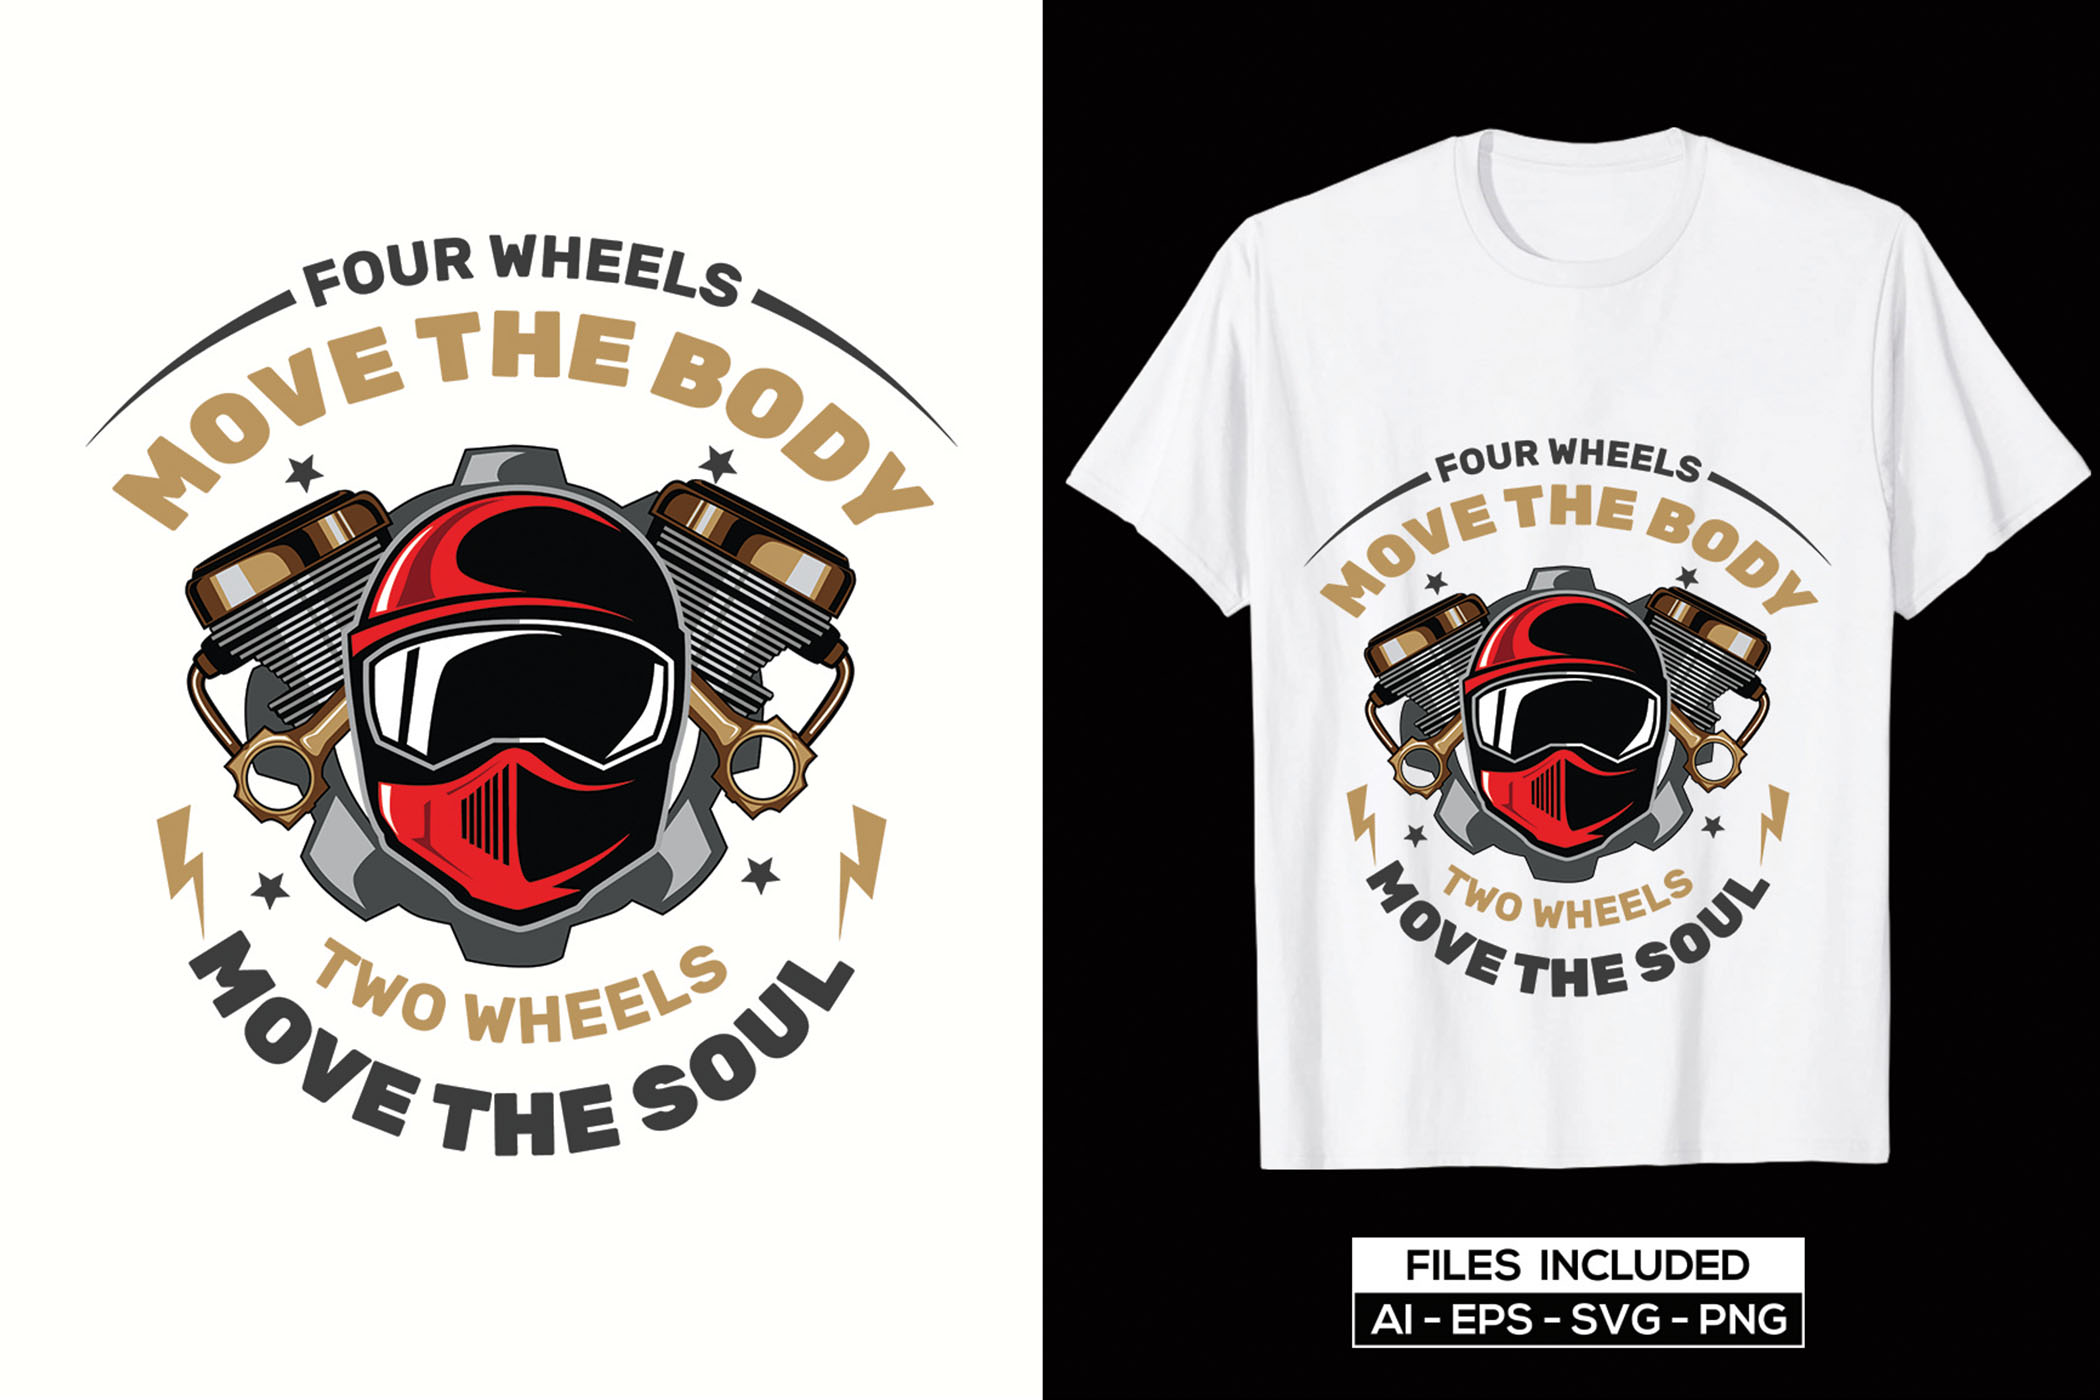 White quality t-shirts with motorcyclist.